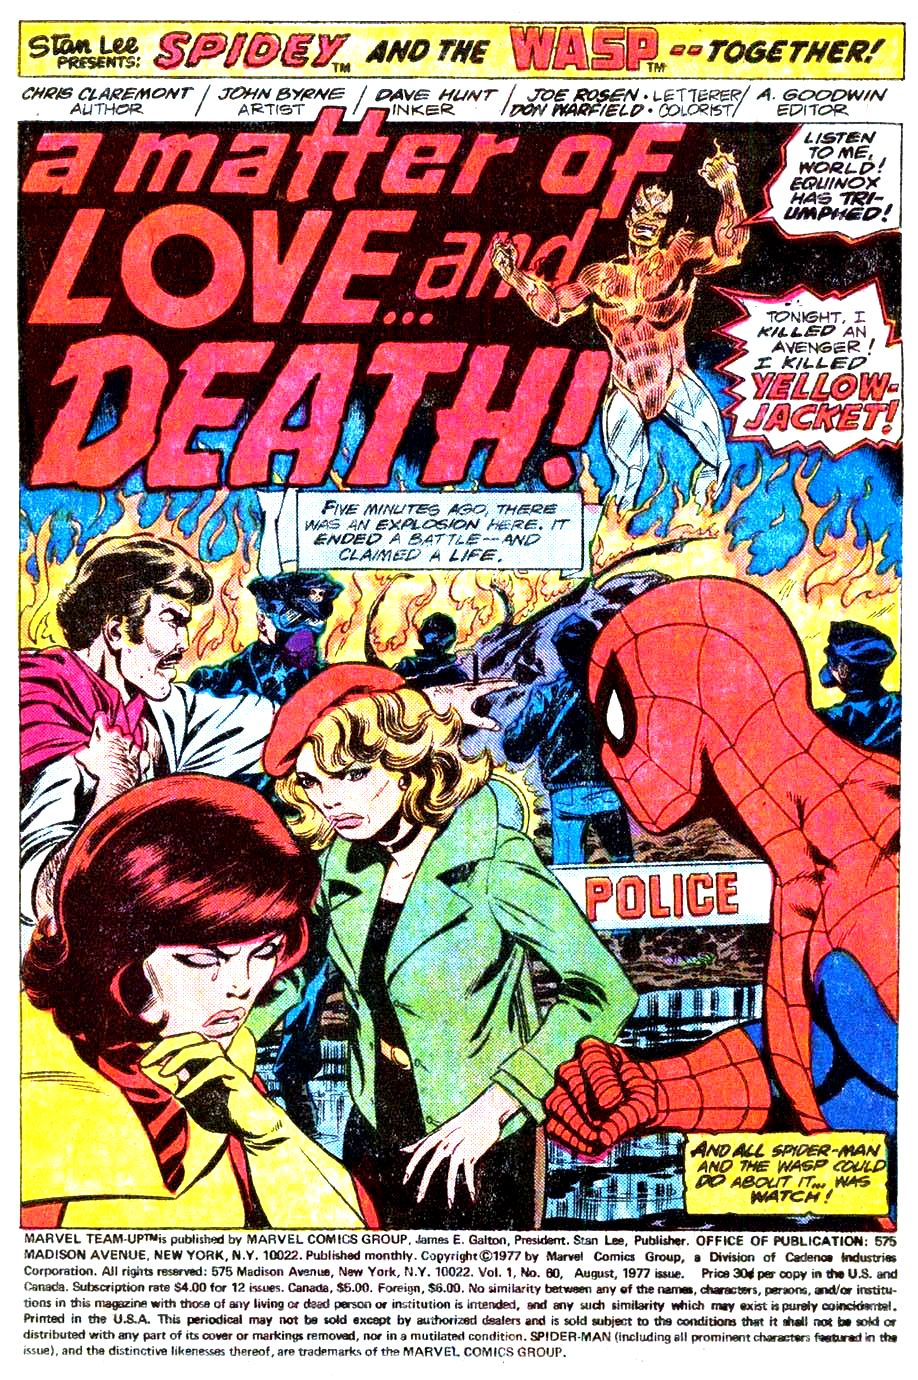 A Matter Of Love and Death - Marvel Team-Up Splash Page by John Byrne